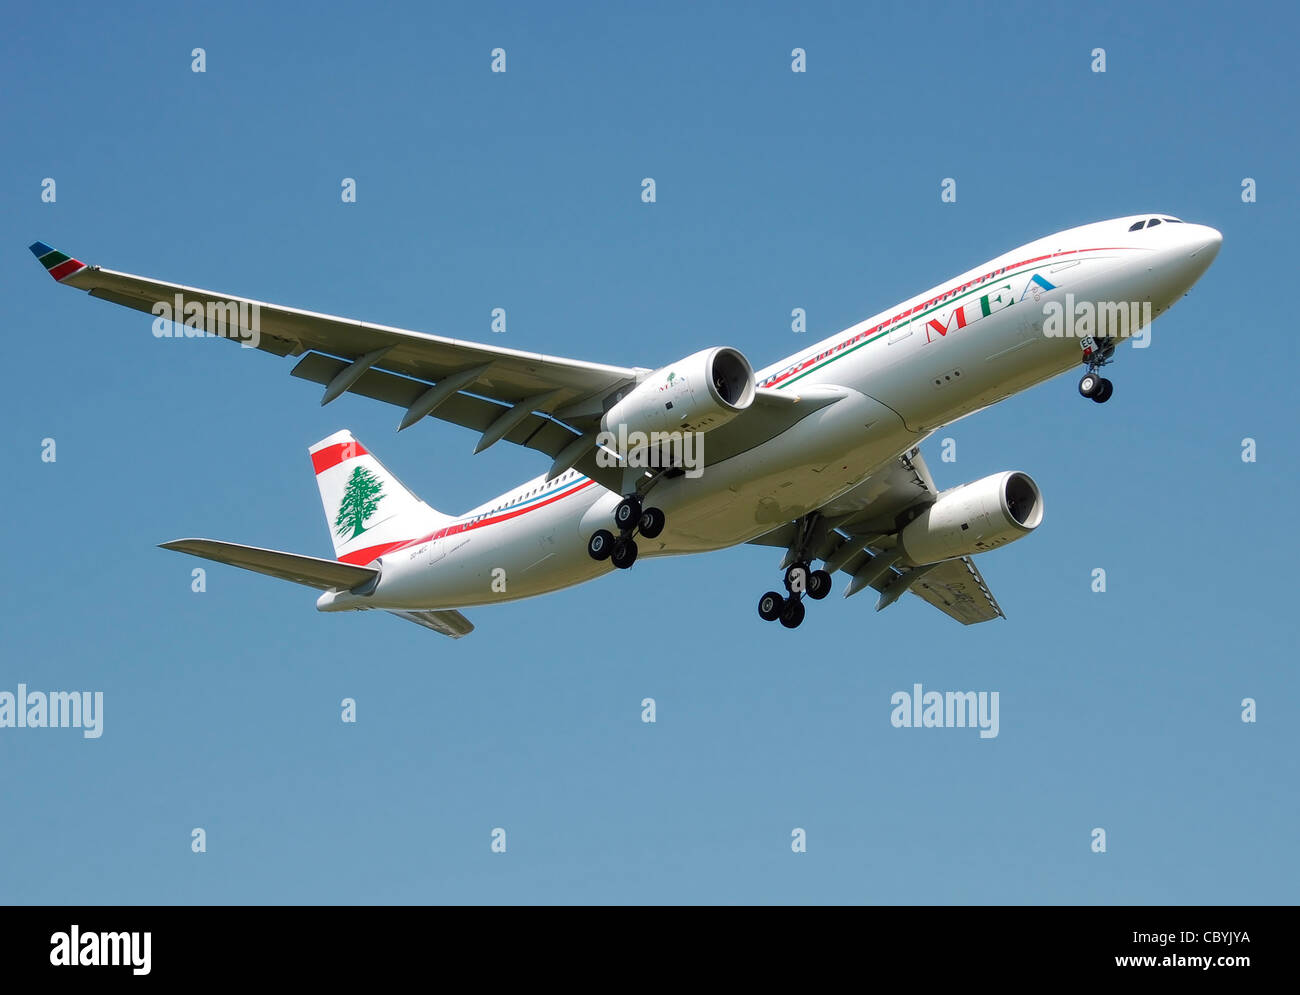 Middle East Airlines A330-200 (OD-MEC) lands at London Heathrow Airport, England. - Stock Image